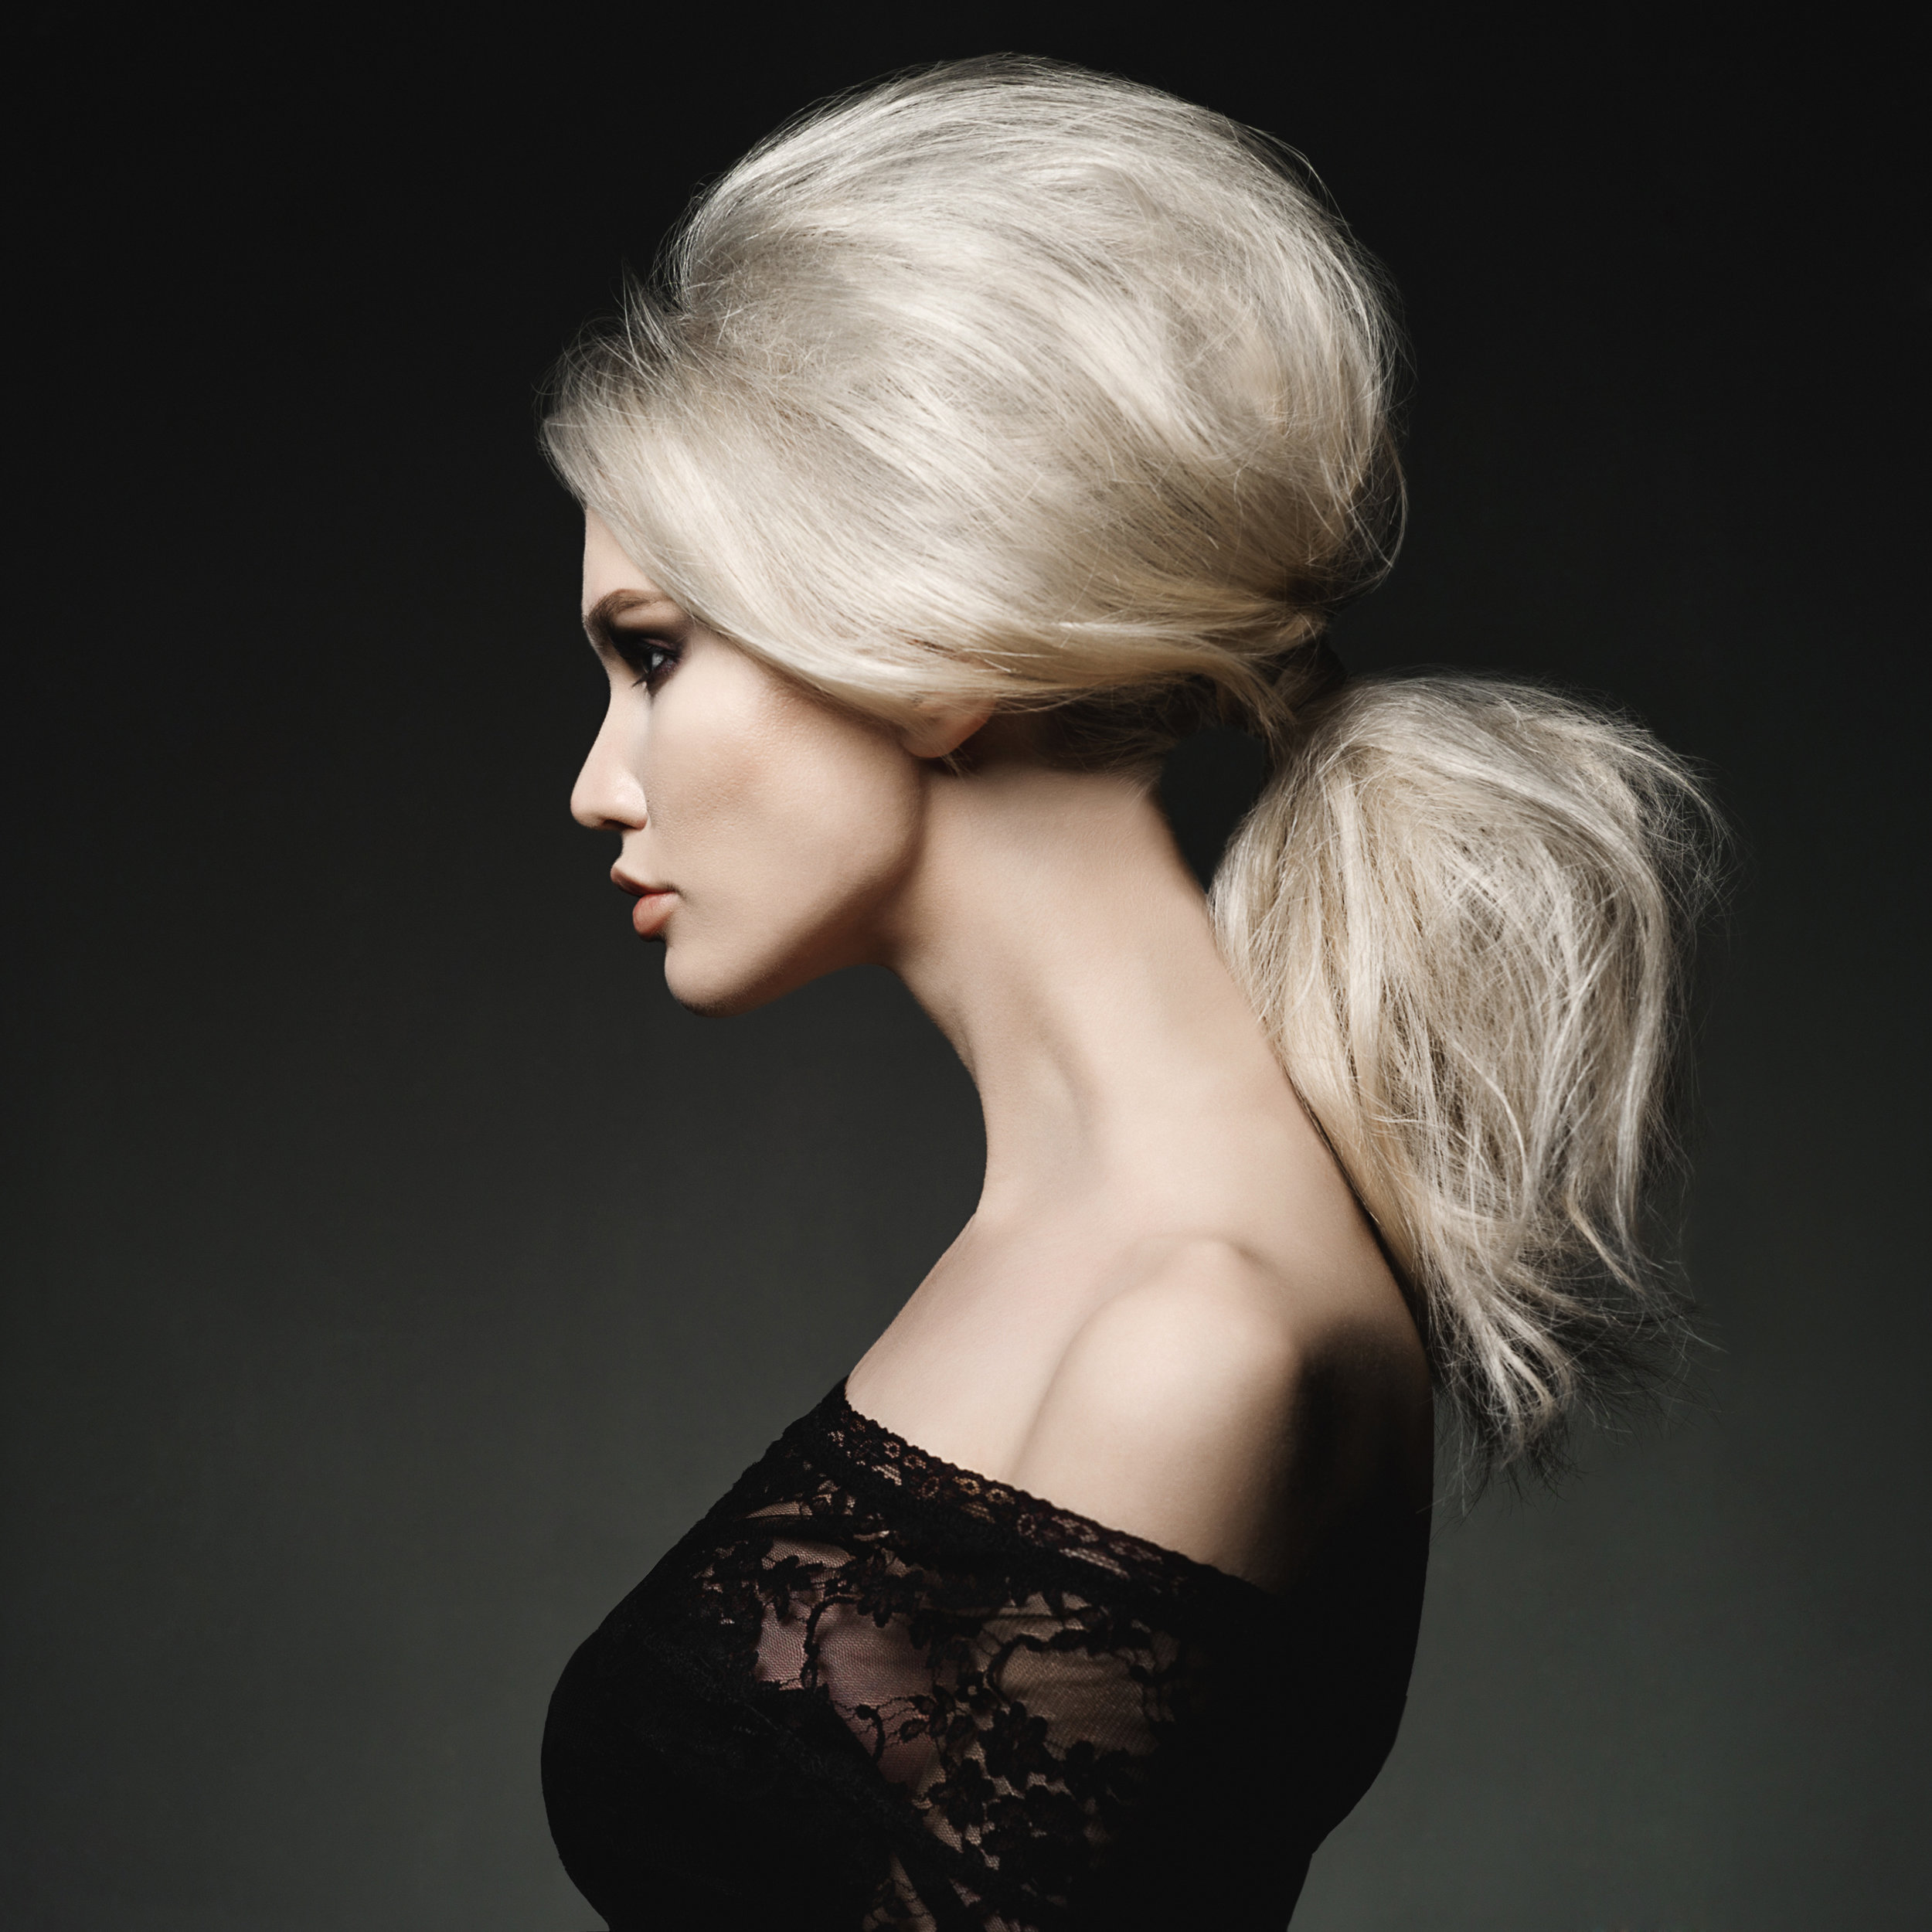 Beautiful-blonde-woman-with-elegant-hairstyle-529062824_3000x3000 2.jpeg